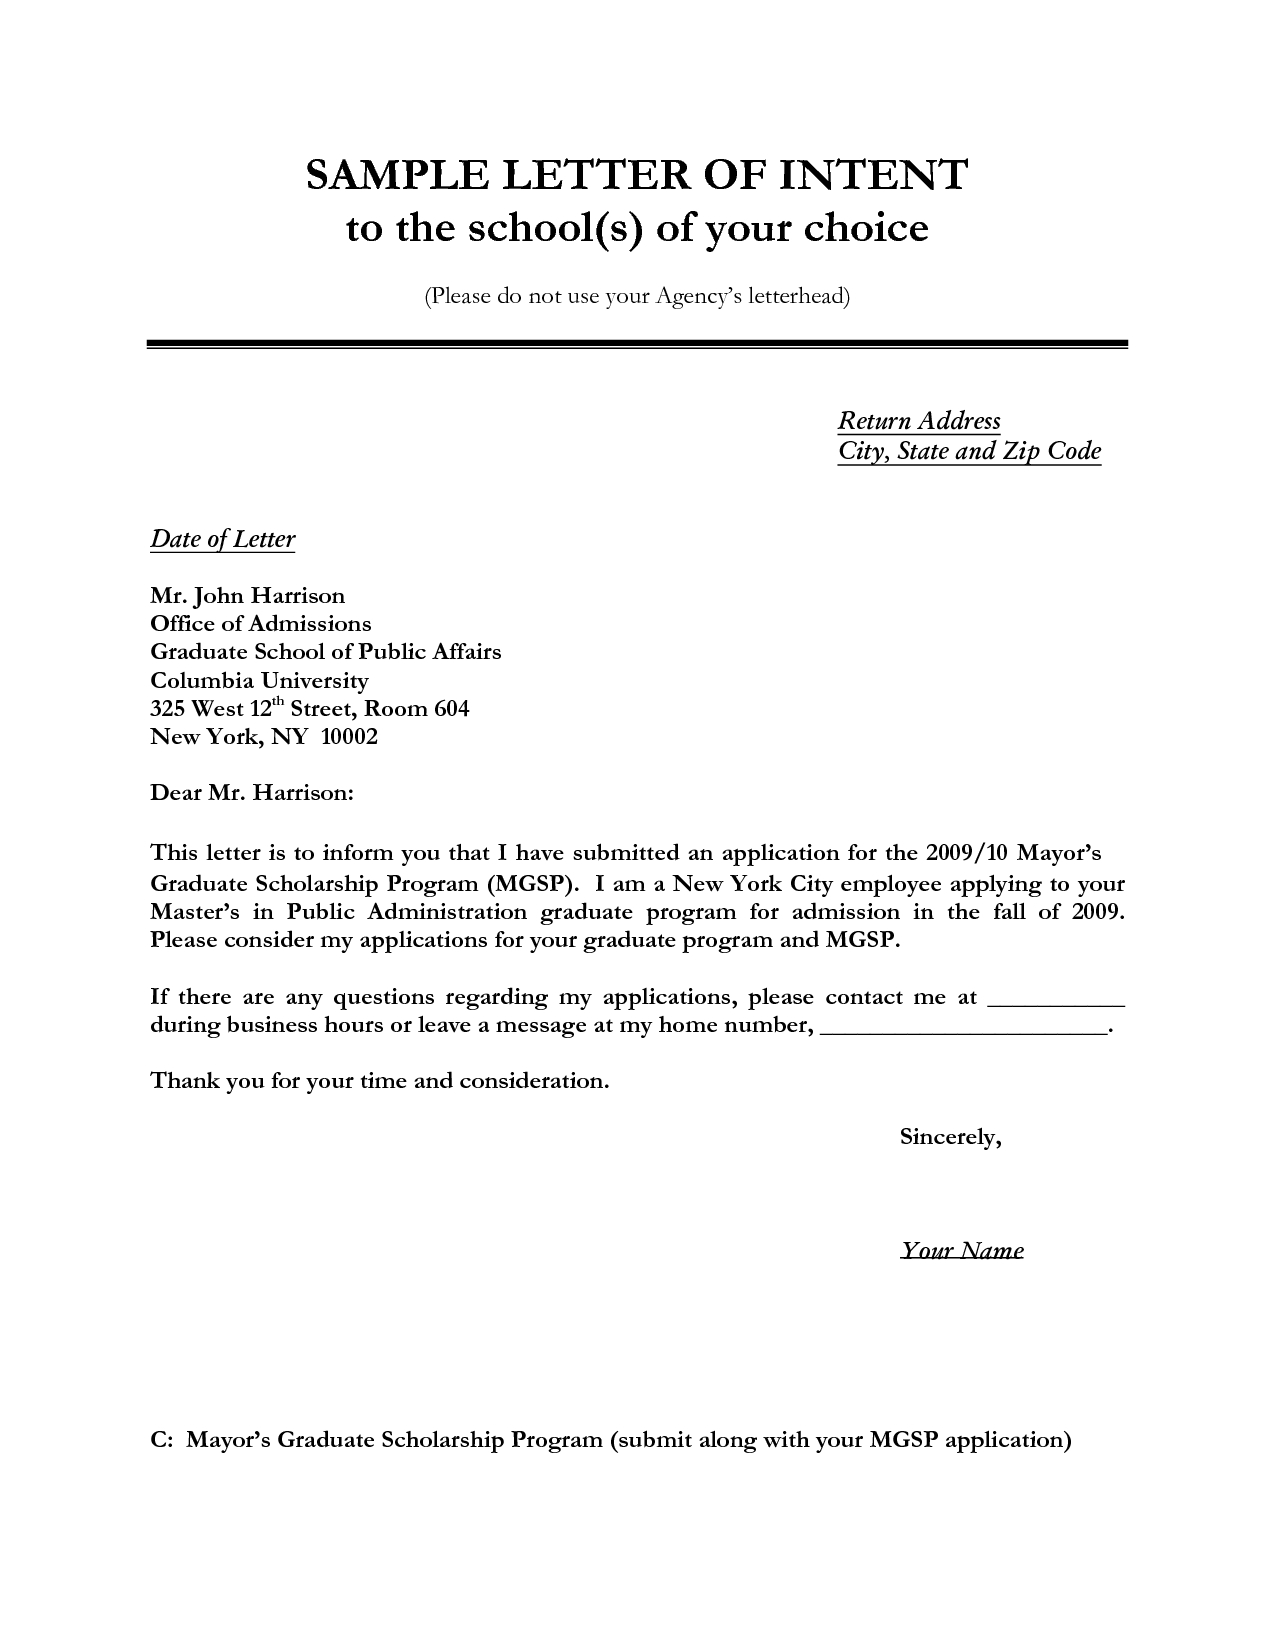 Commercial Real Estate Letter Of Intent Template - Letter Of Intent Sample